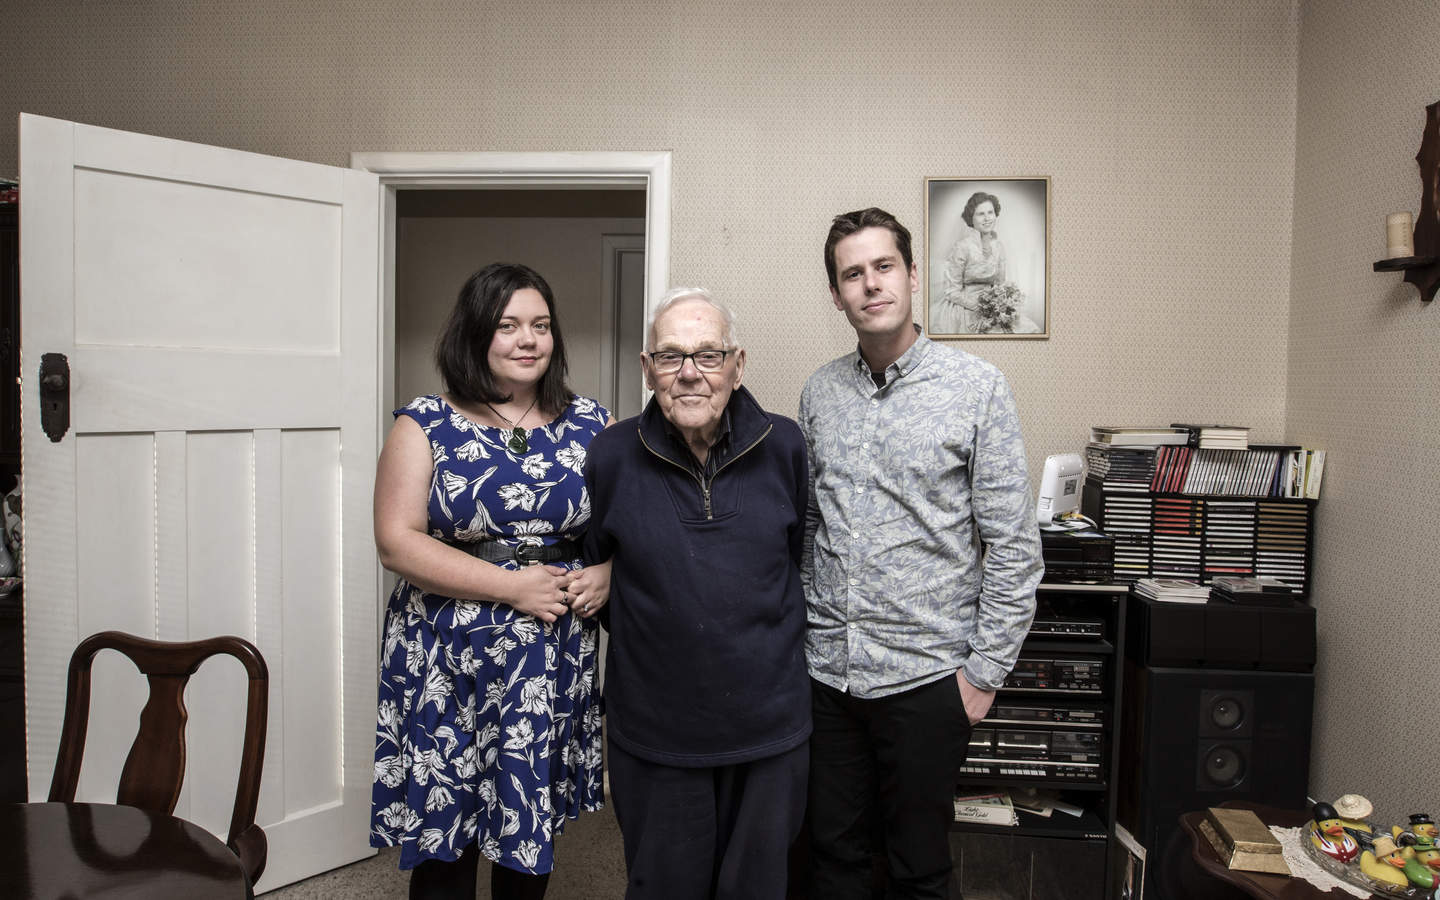 Georgia and Joseph Van Gessel moved in with Georgia's grandfather Bob McKay after struggling for years to buy a house